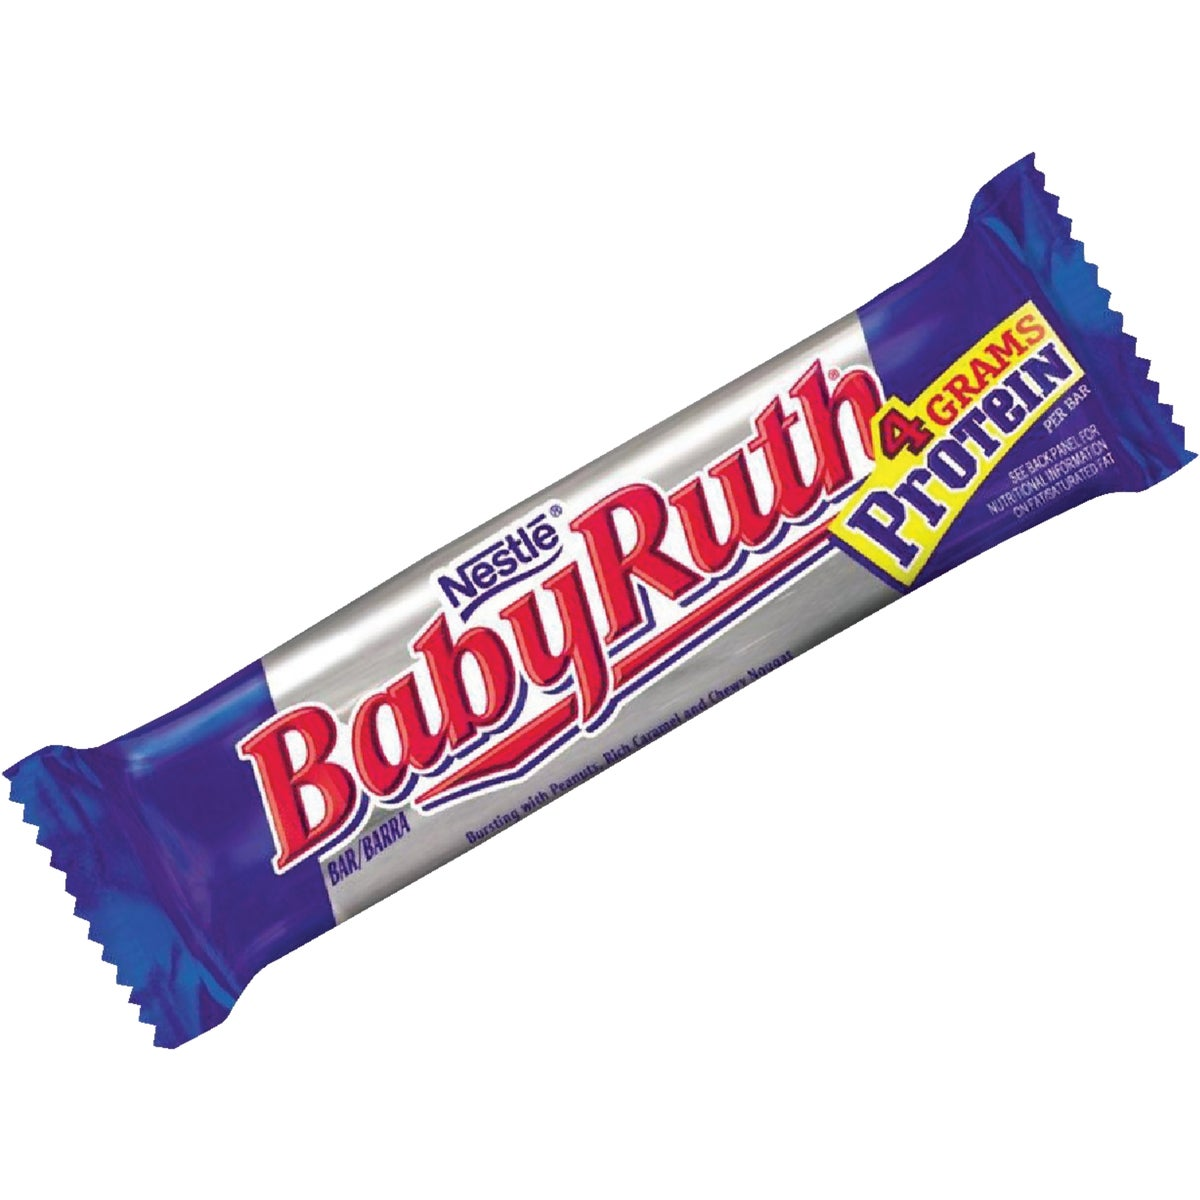 2.1OZ BABY RUTH - 1588 by Liberty Distribution